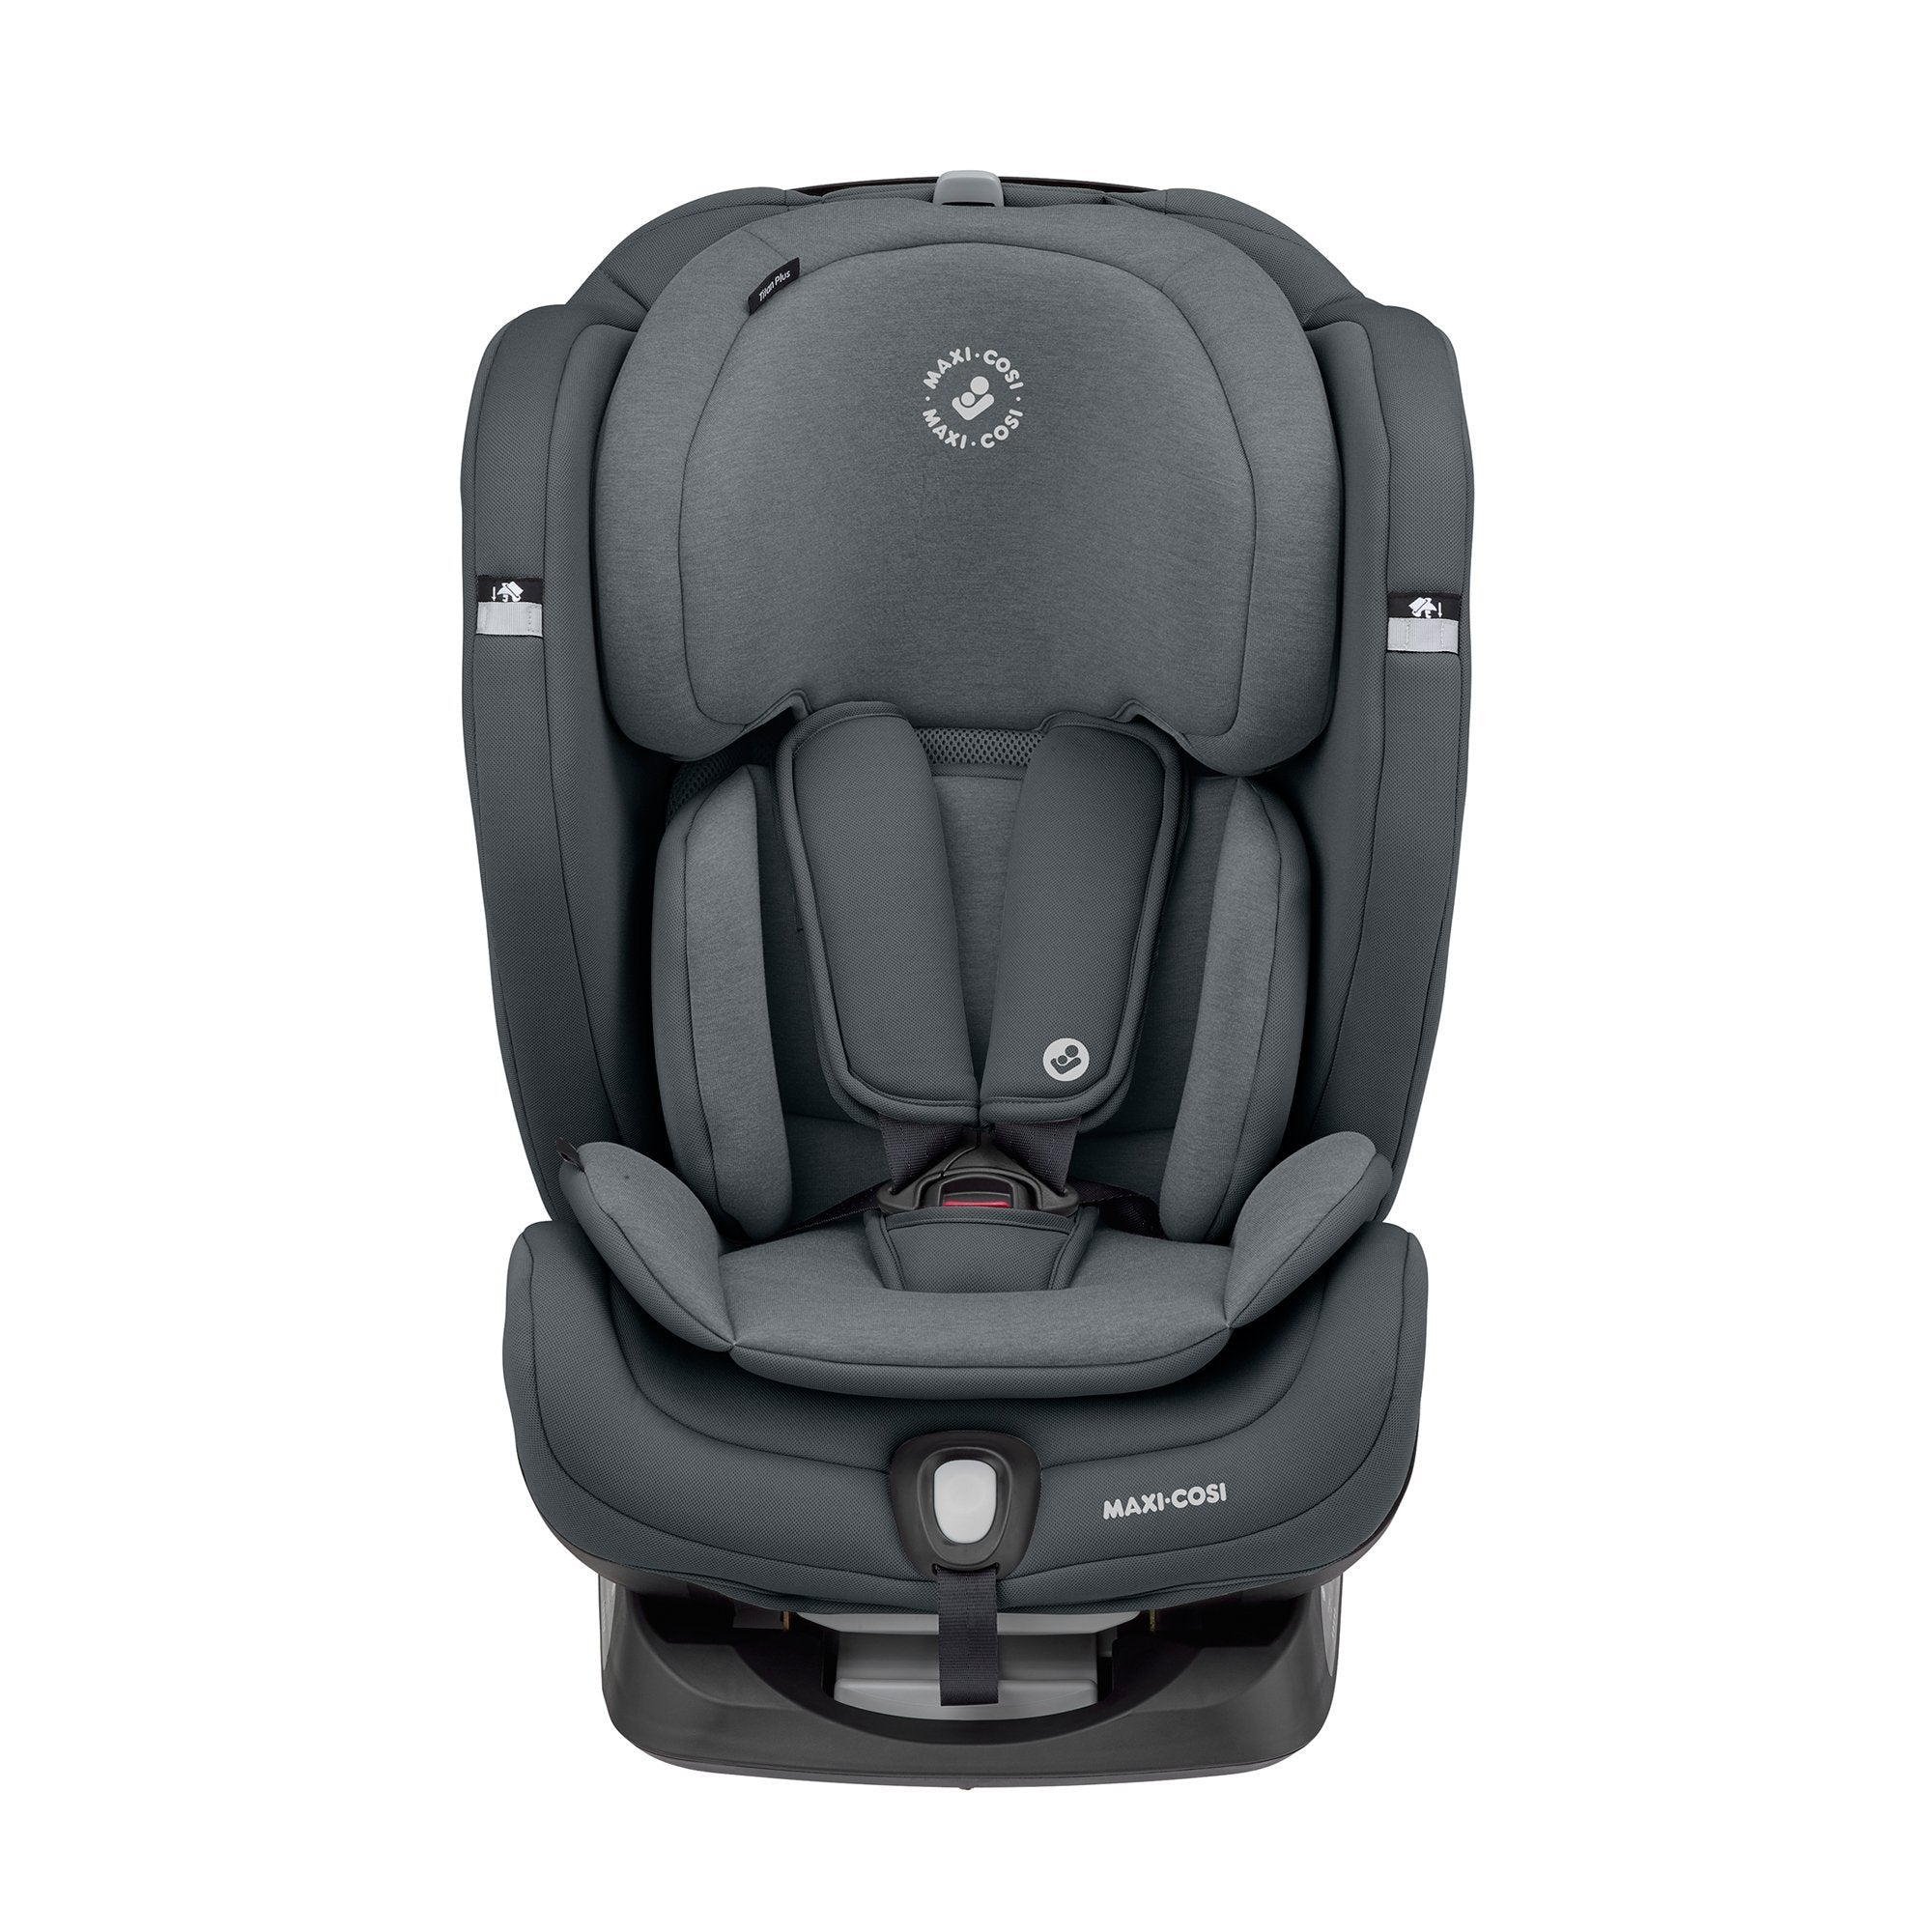 Maxi-Cosi Titan Plus 9 months to 12 years Car Seat - Authentic Graphite - Pushchair Expert